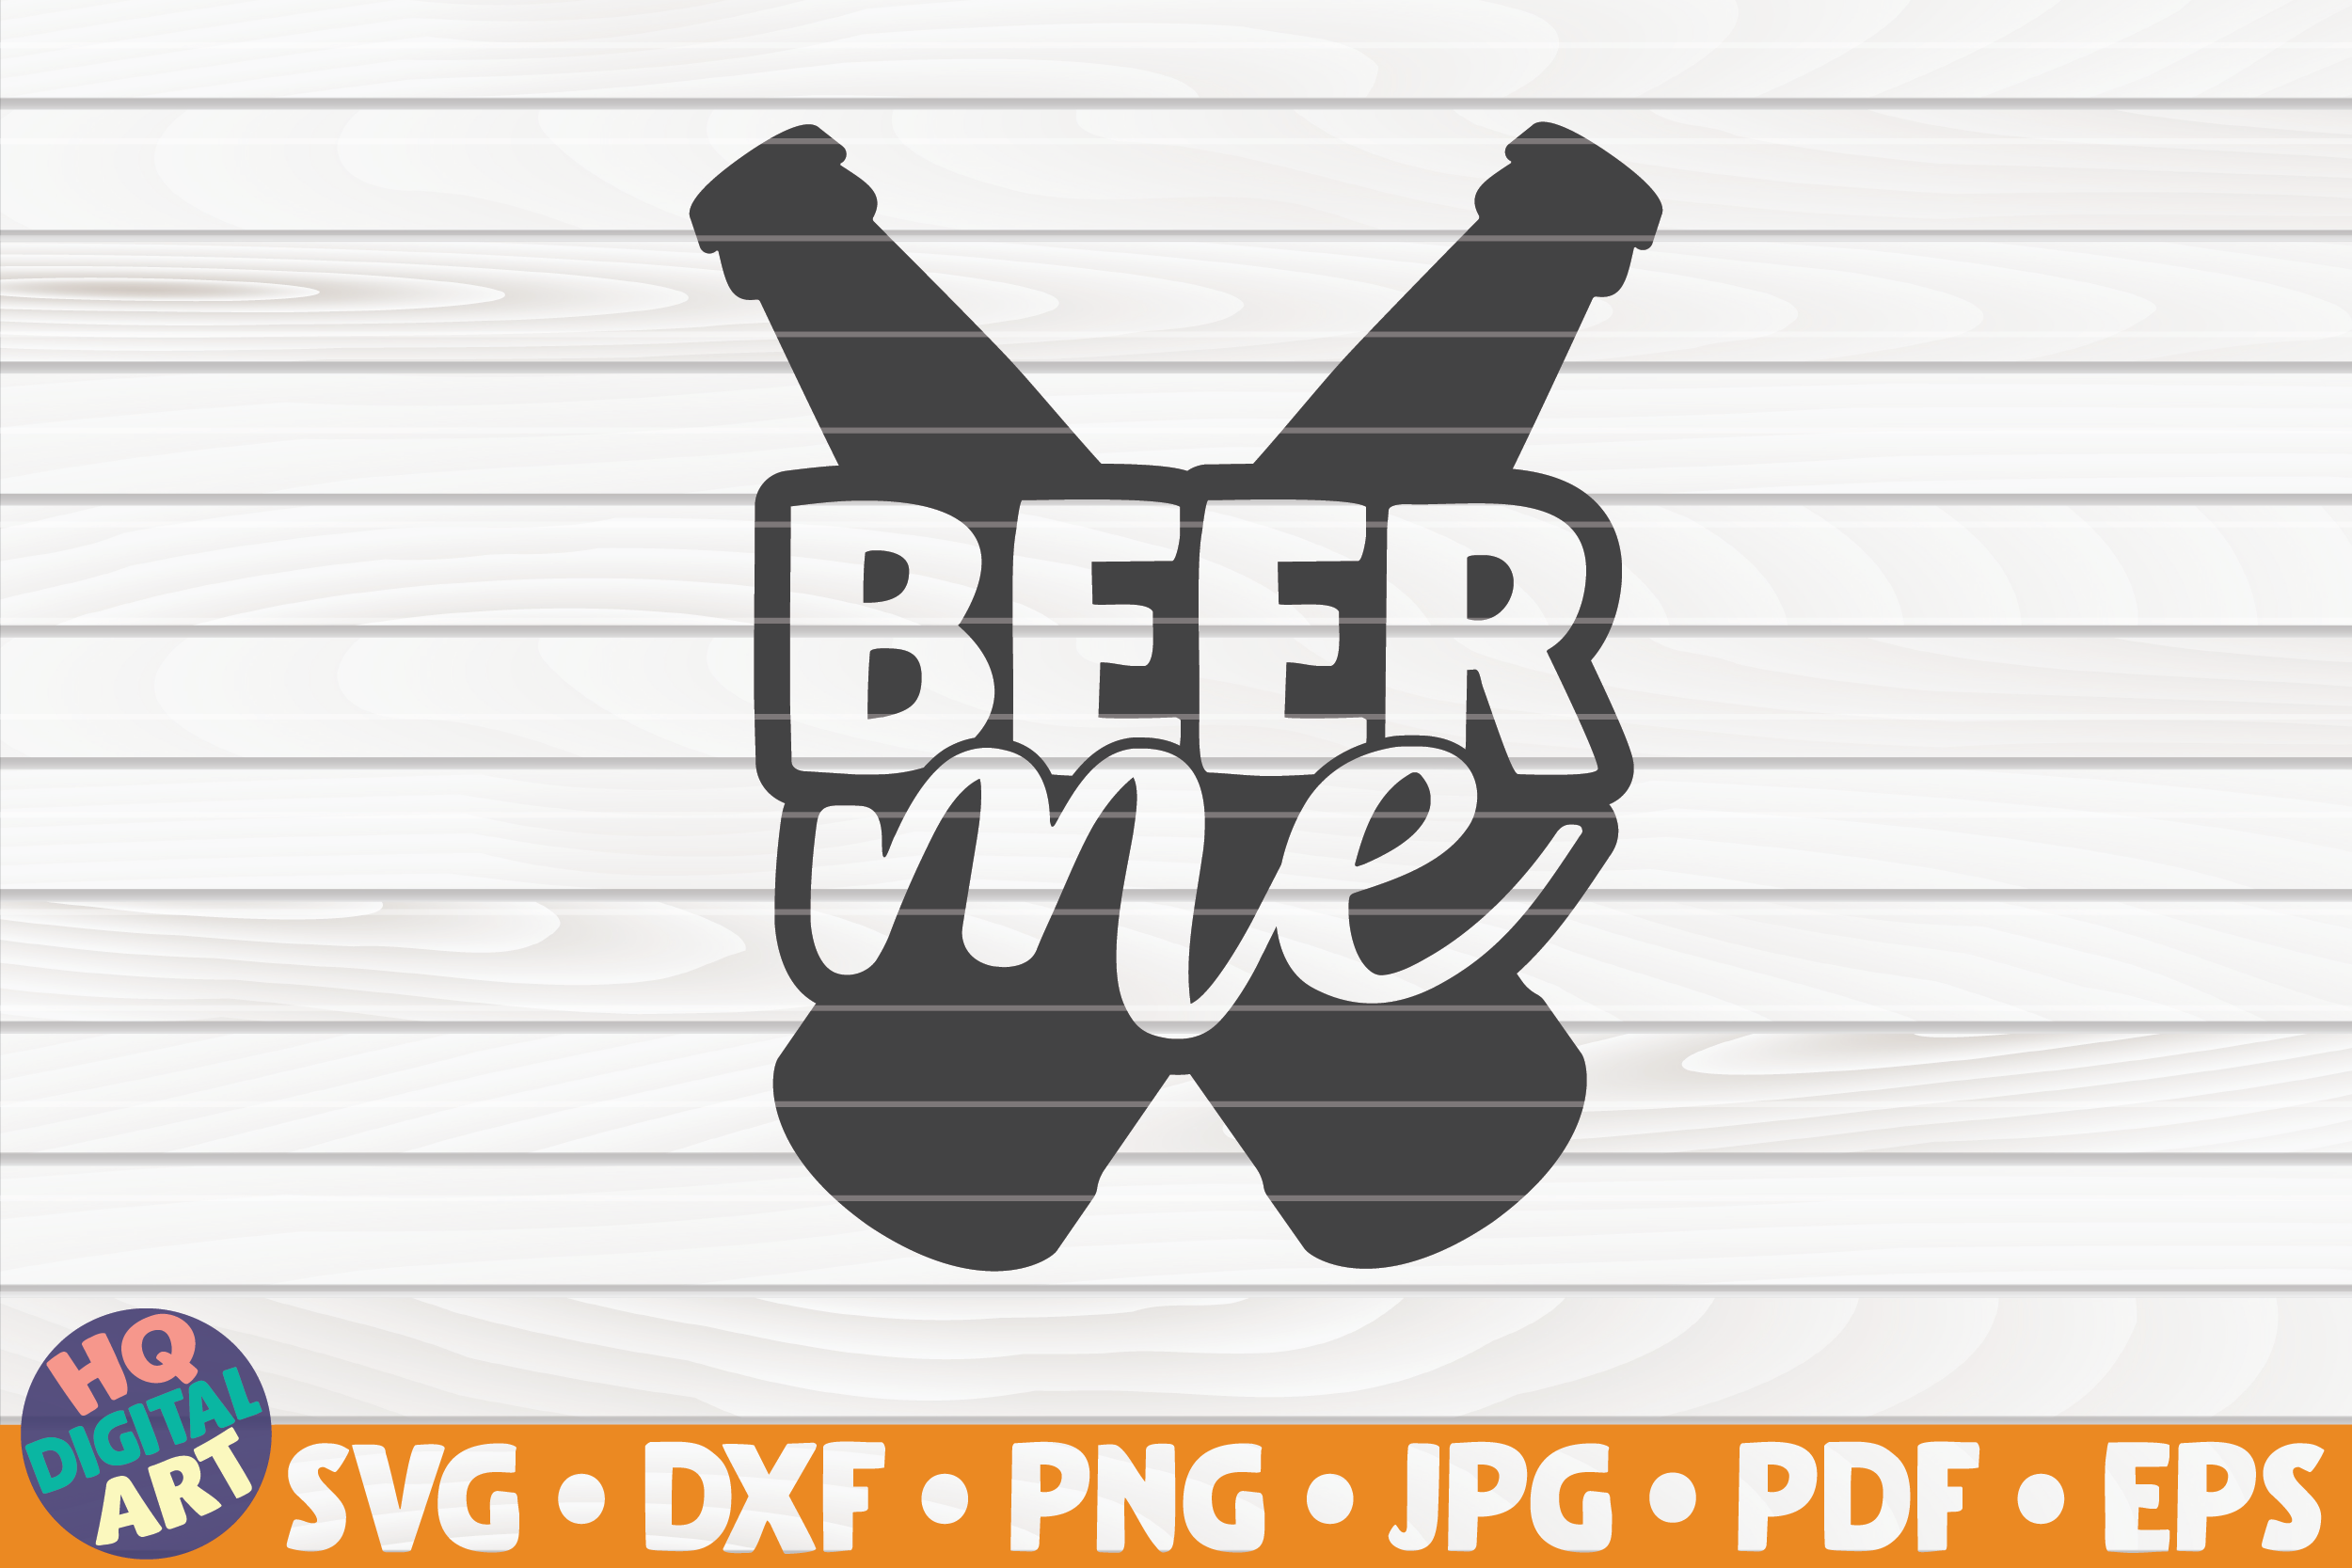 Download Free Beer Me Graphic By Mihaibadea95 Creative Fabrica for Cricut Explore, Silhouette and other cutting machines.